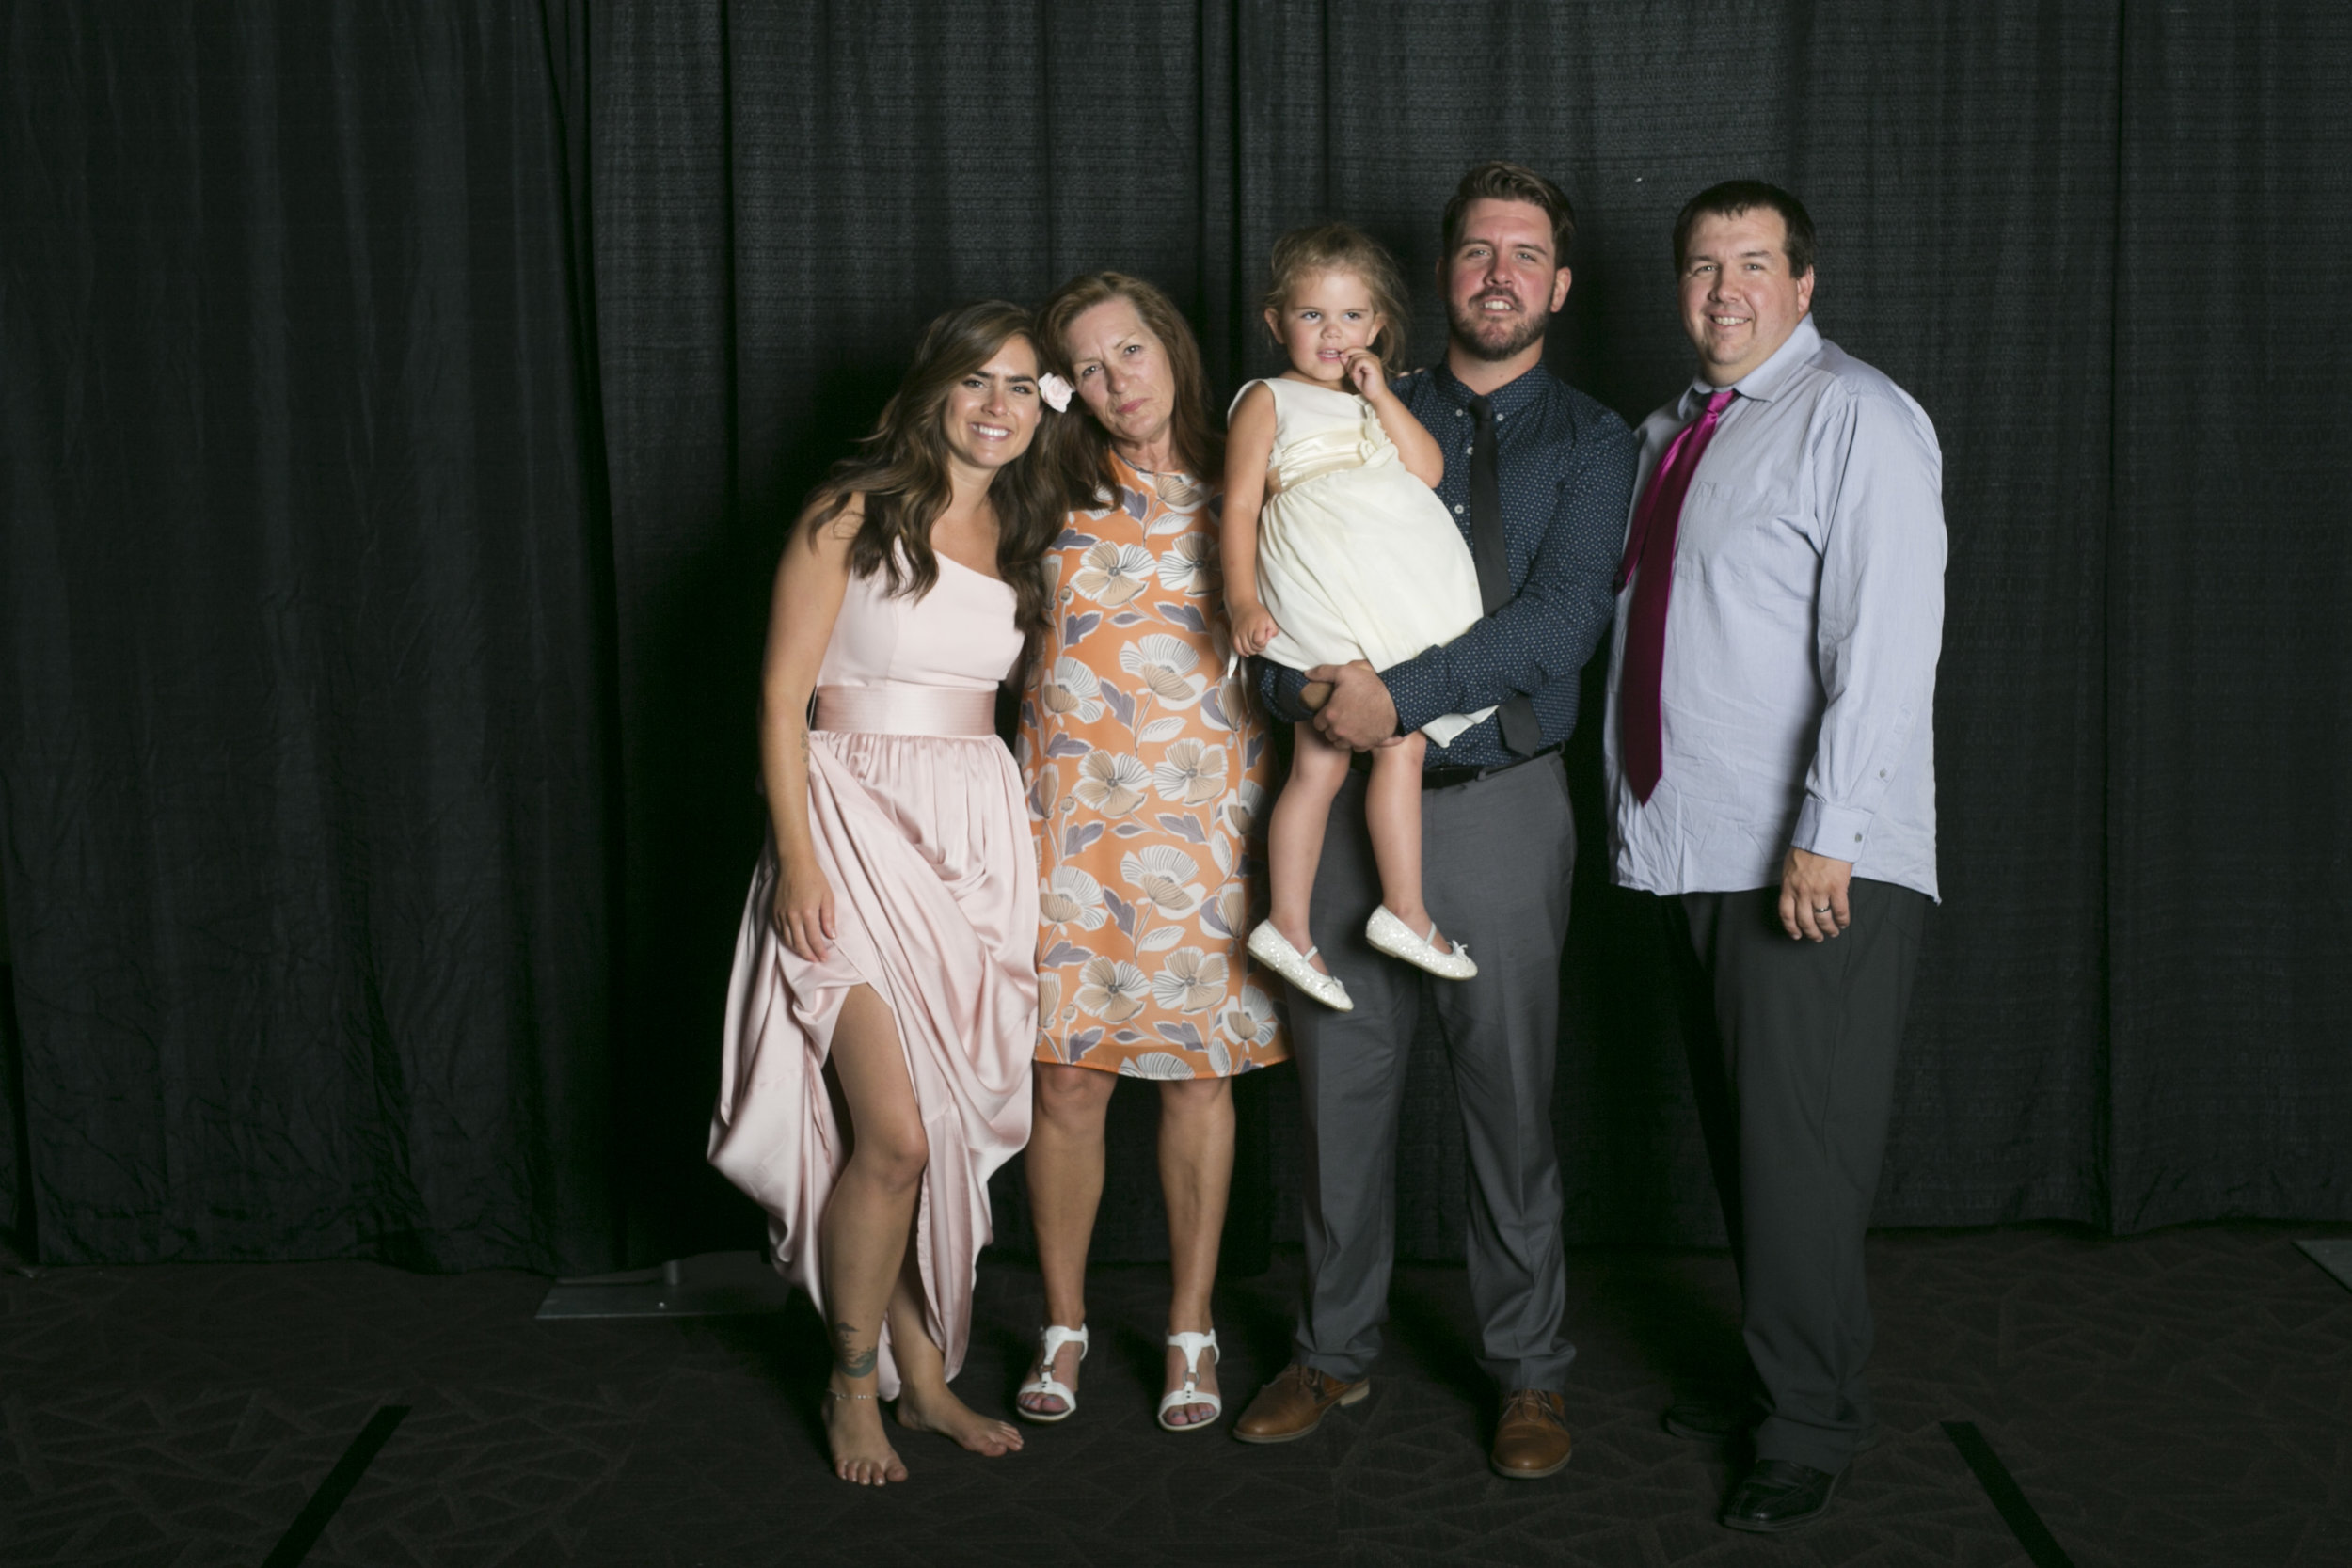 wedding photo booth-127.jpg